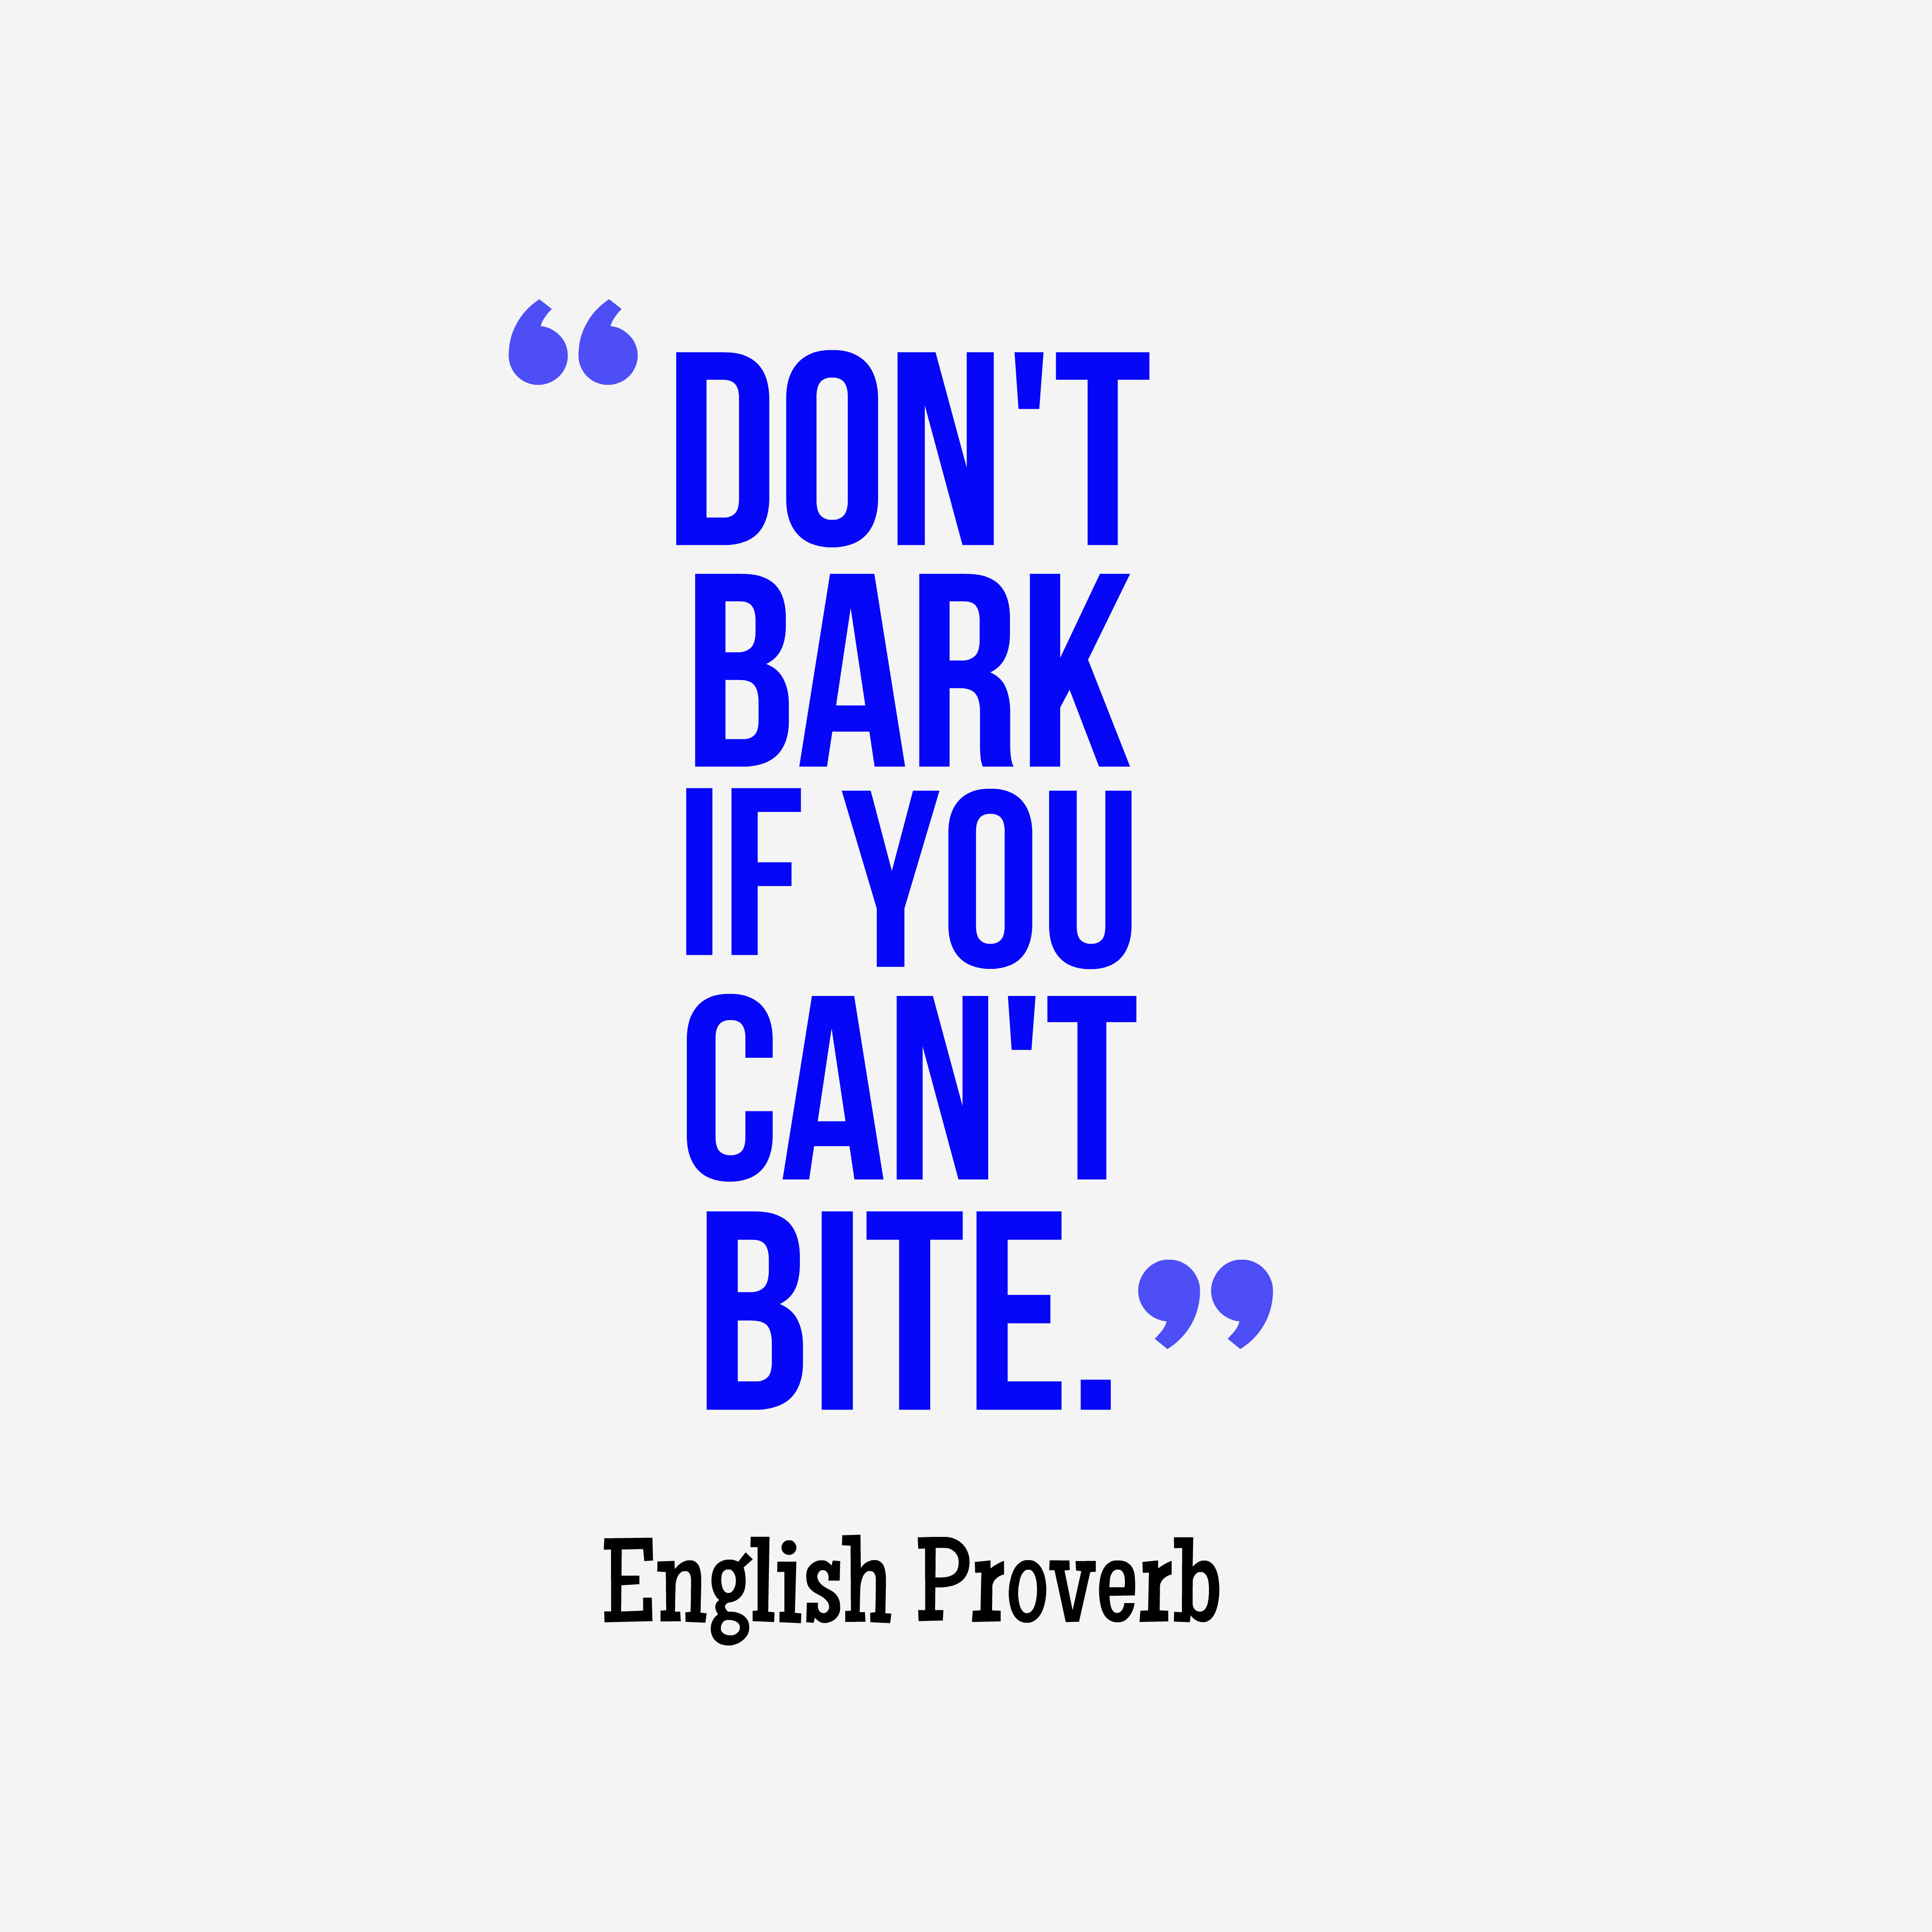 English Quotes: Get High Resolution Using Text From English Proverb About